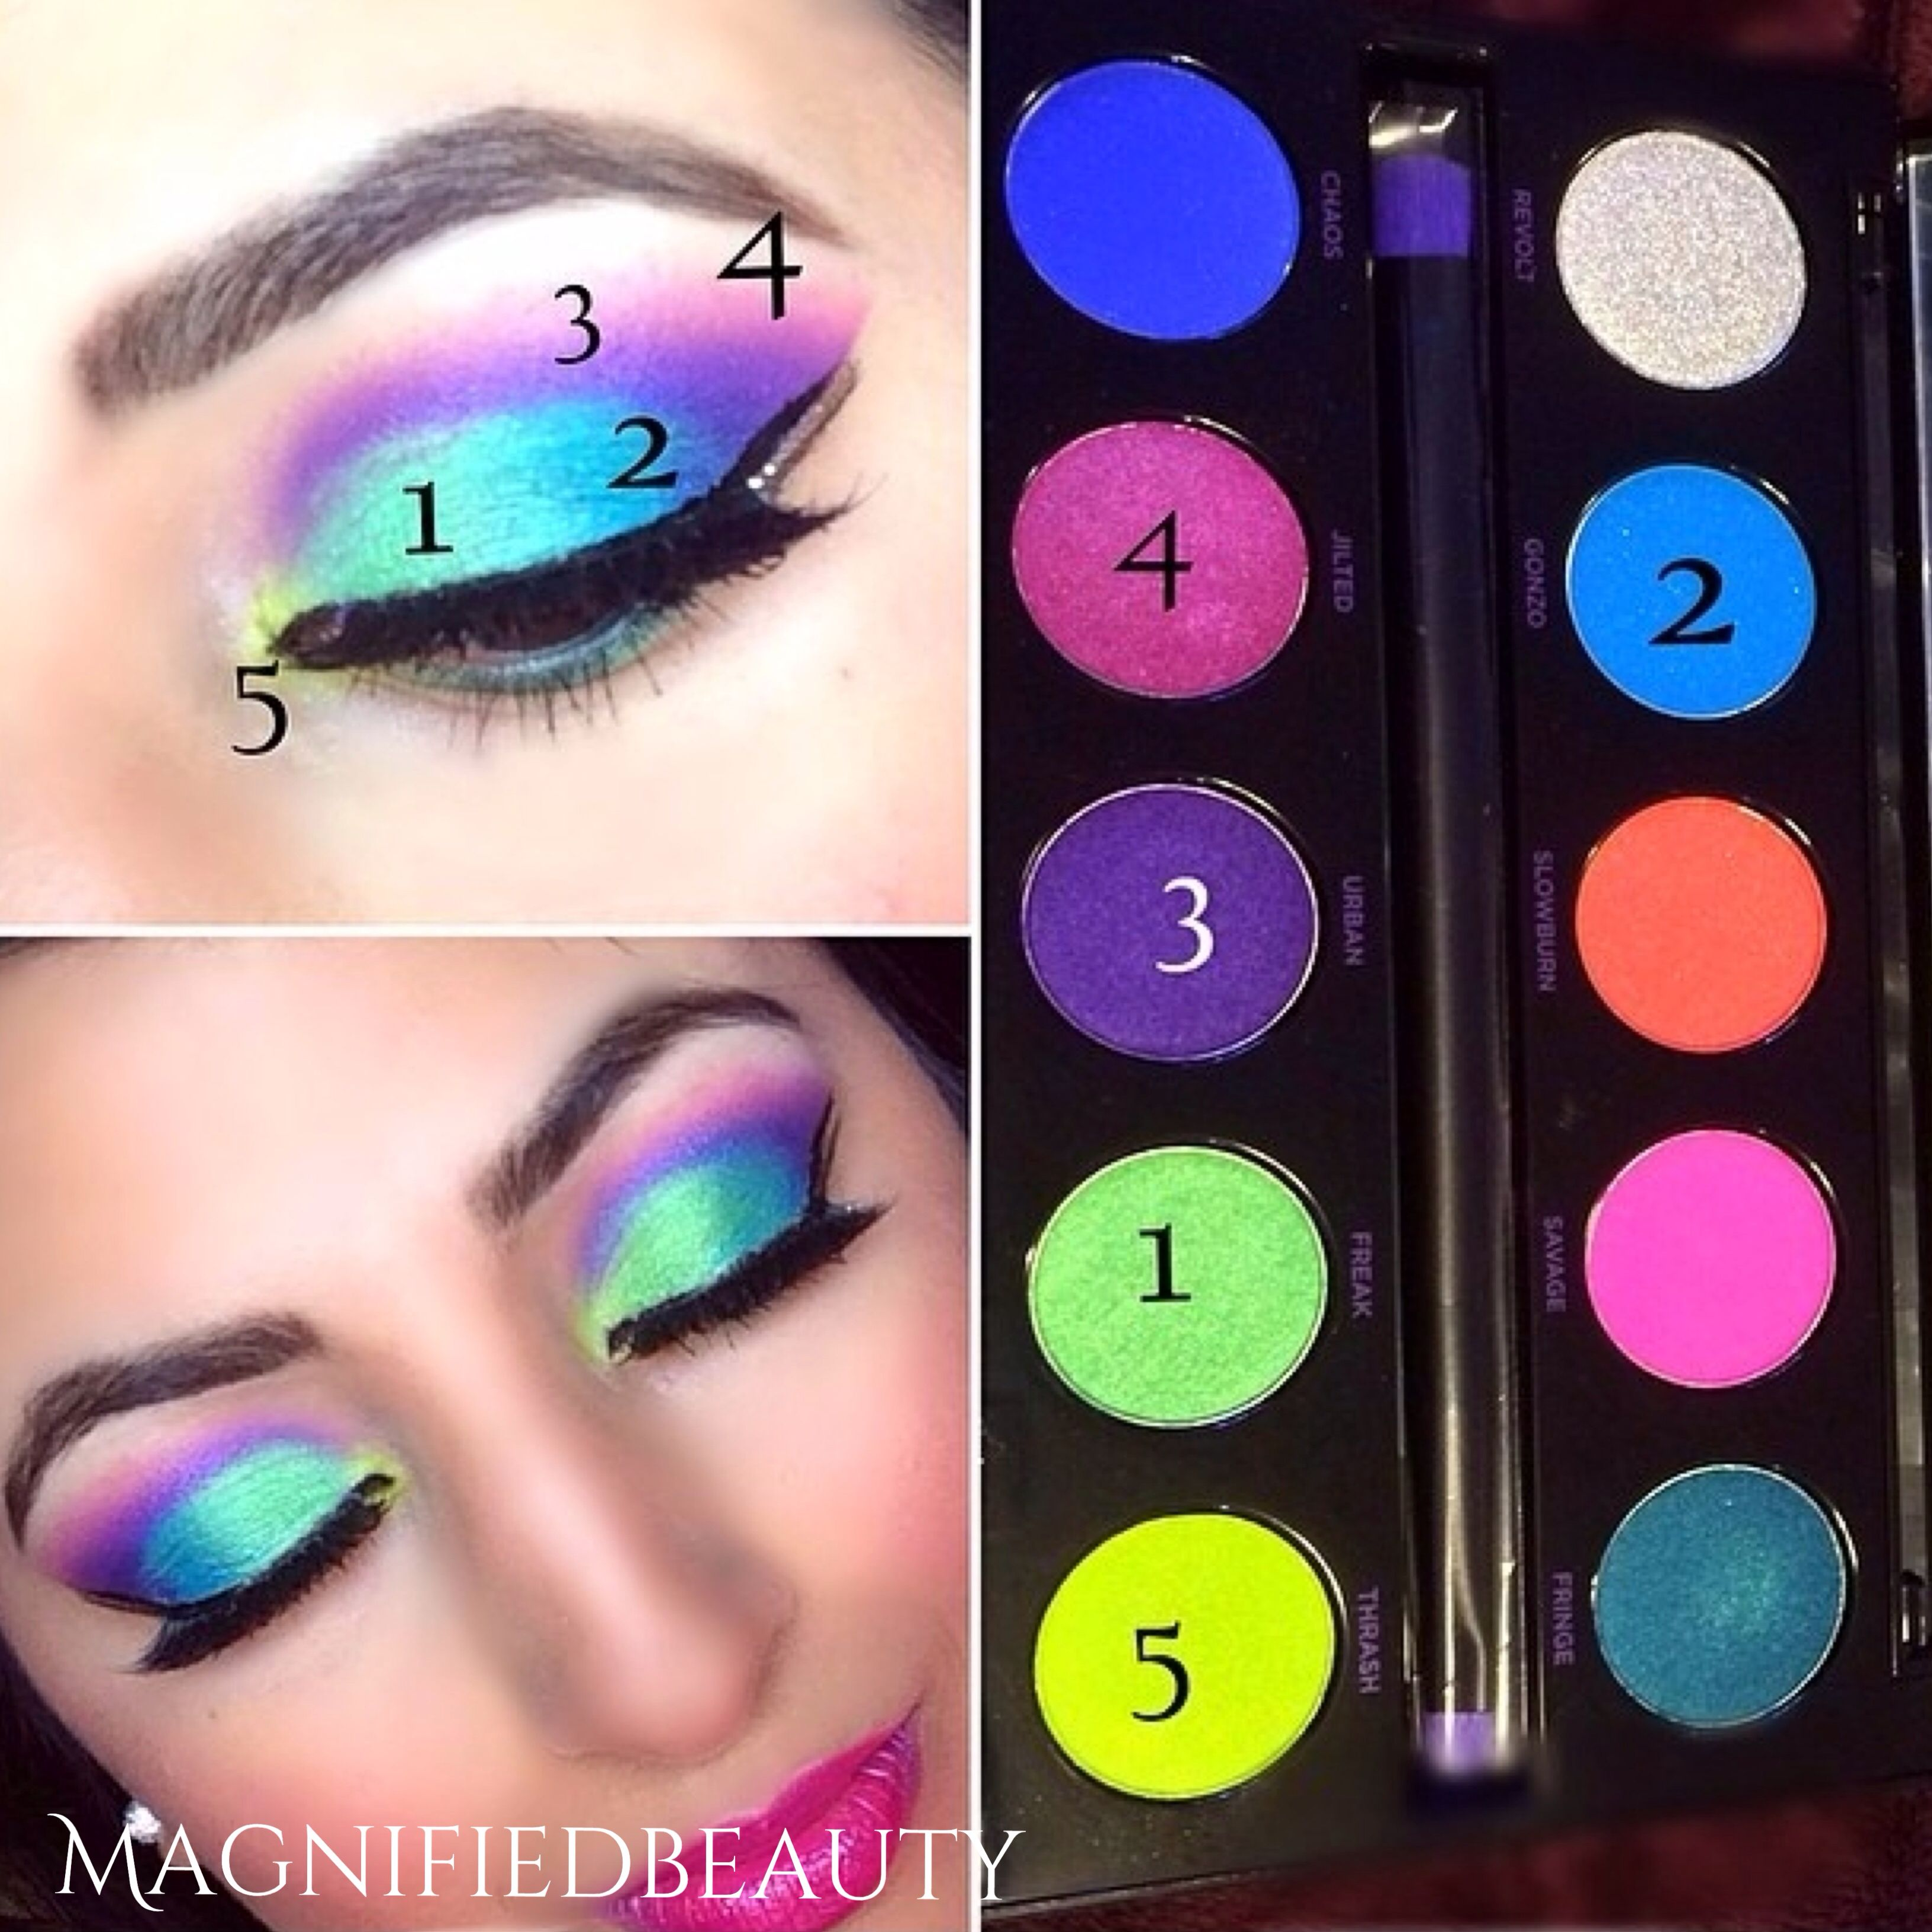 Urban Decay Electric Palette Amazing Colors By Magnifiedbeauty On